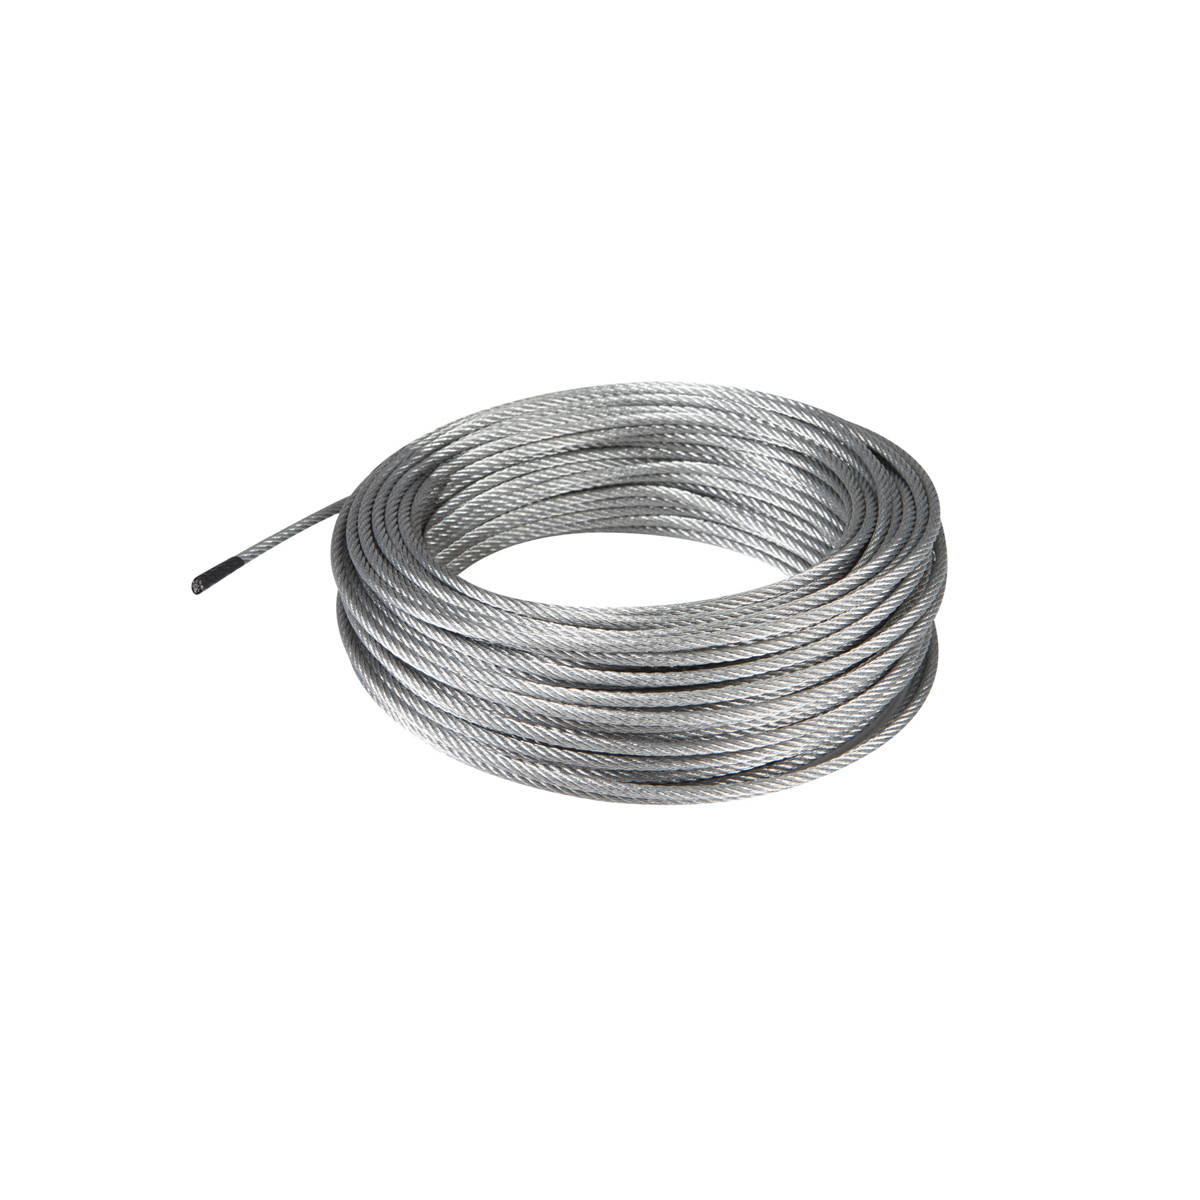 100 ft. x 3mm Aircraft Grade Wire Rope